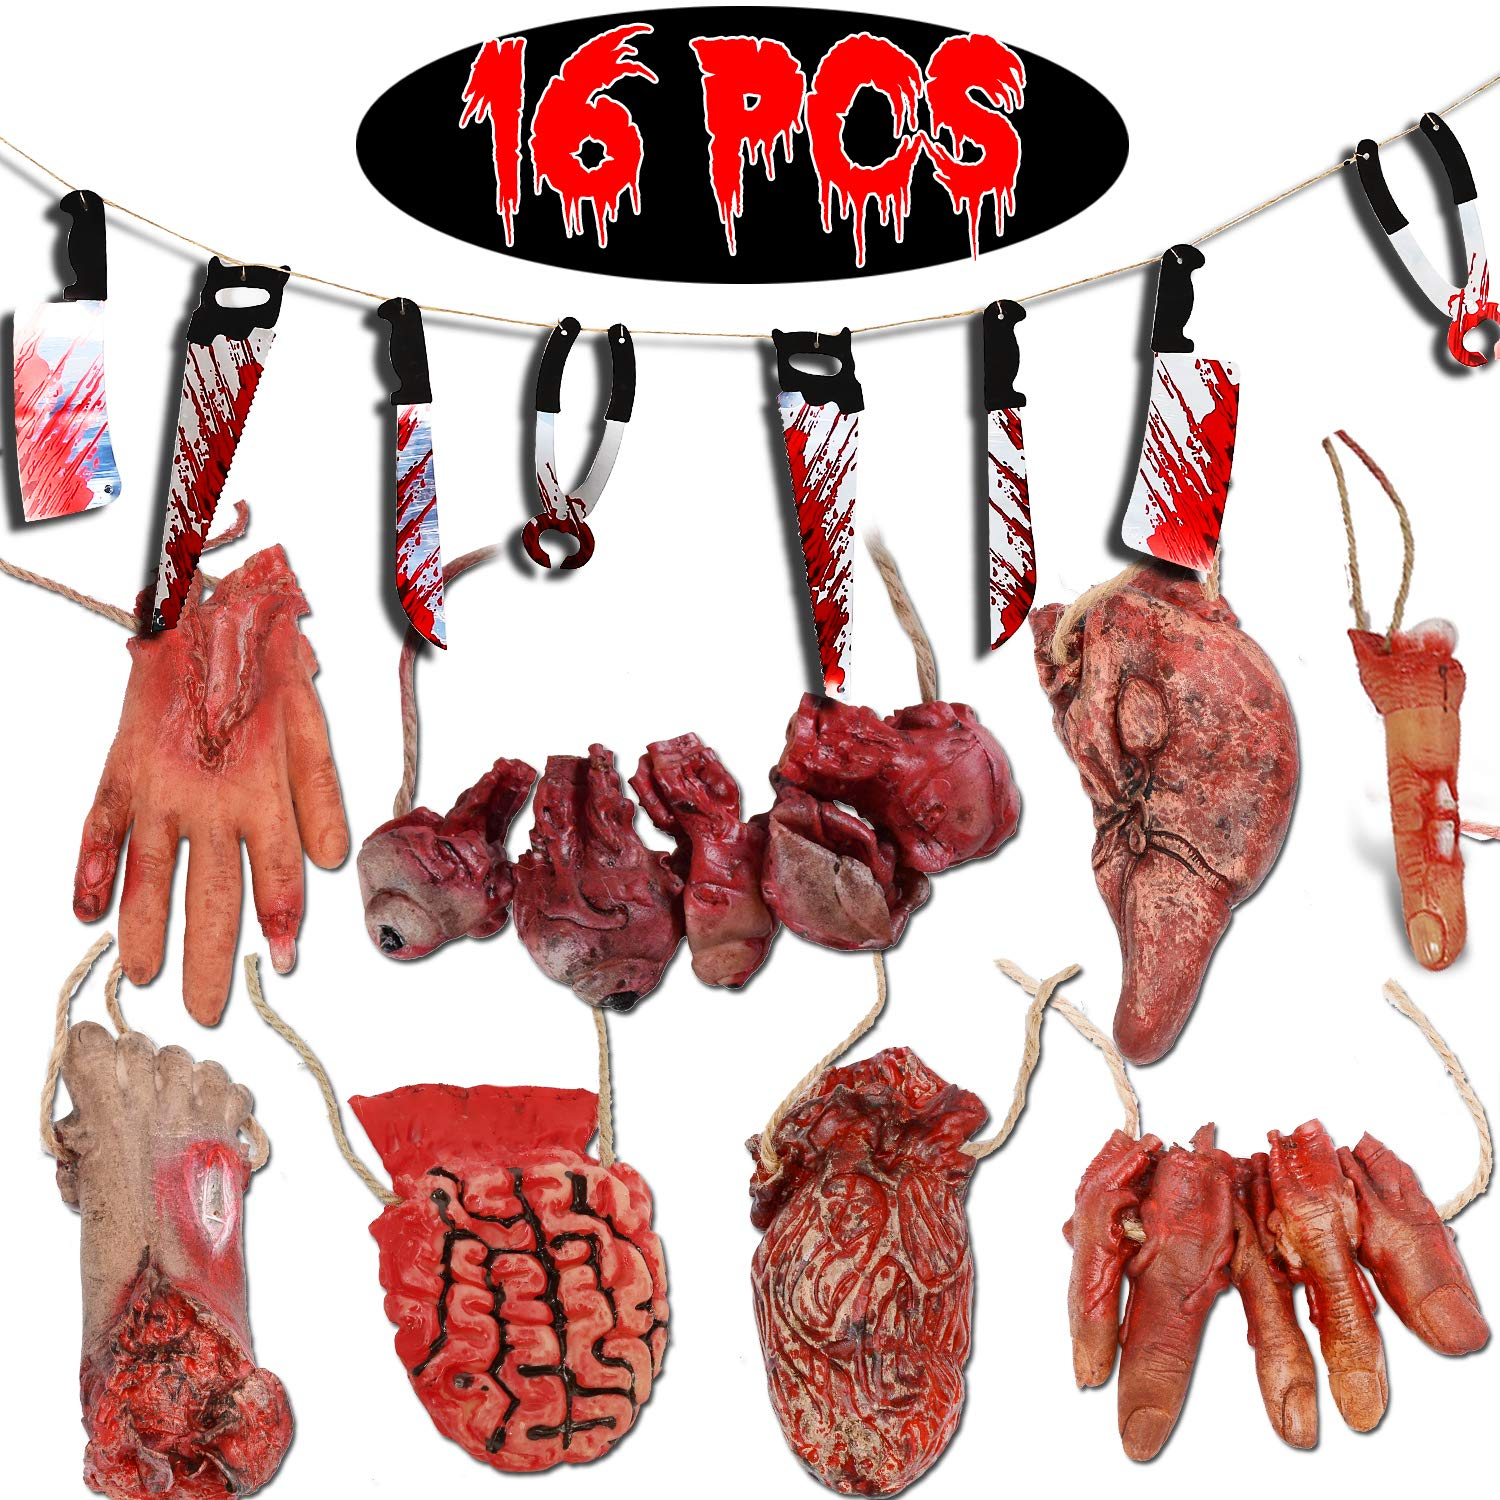 16Pcs Halloween Decorations Broken Body Parts Bloody Weapon Banner Realistic Severed Horror Hand Foot Fingers Scary Bloody Props Party Supplies for Home Indoor Outdoor Yard Haunted House Decorations by TURNMEON